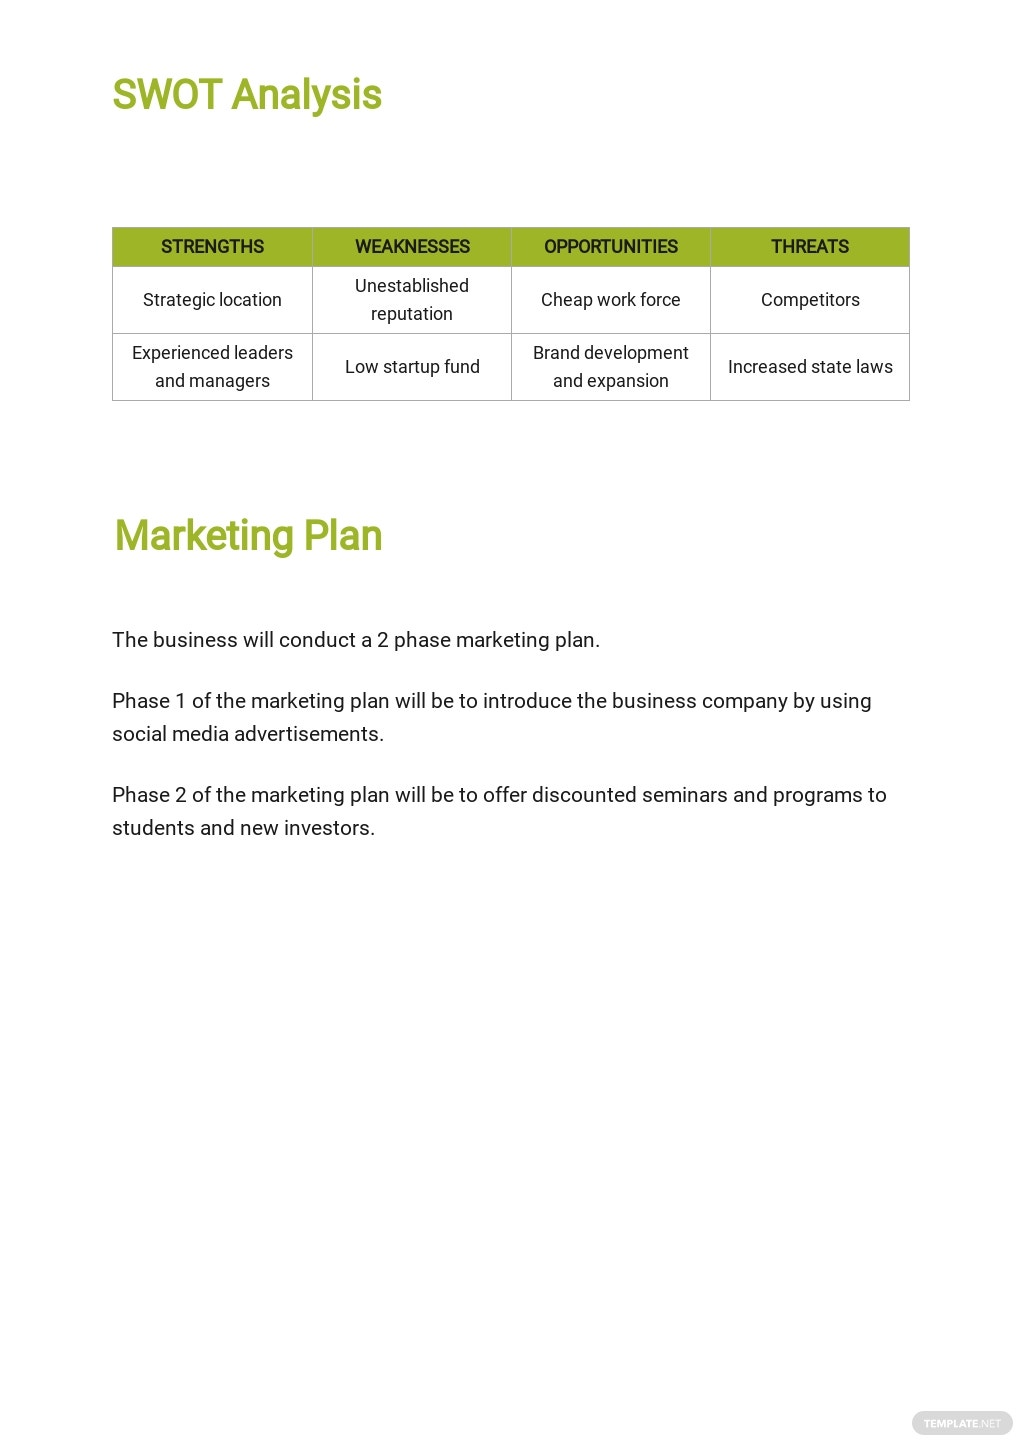 Investment Company Business Plan Template 3.jpe